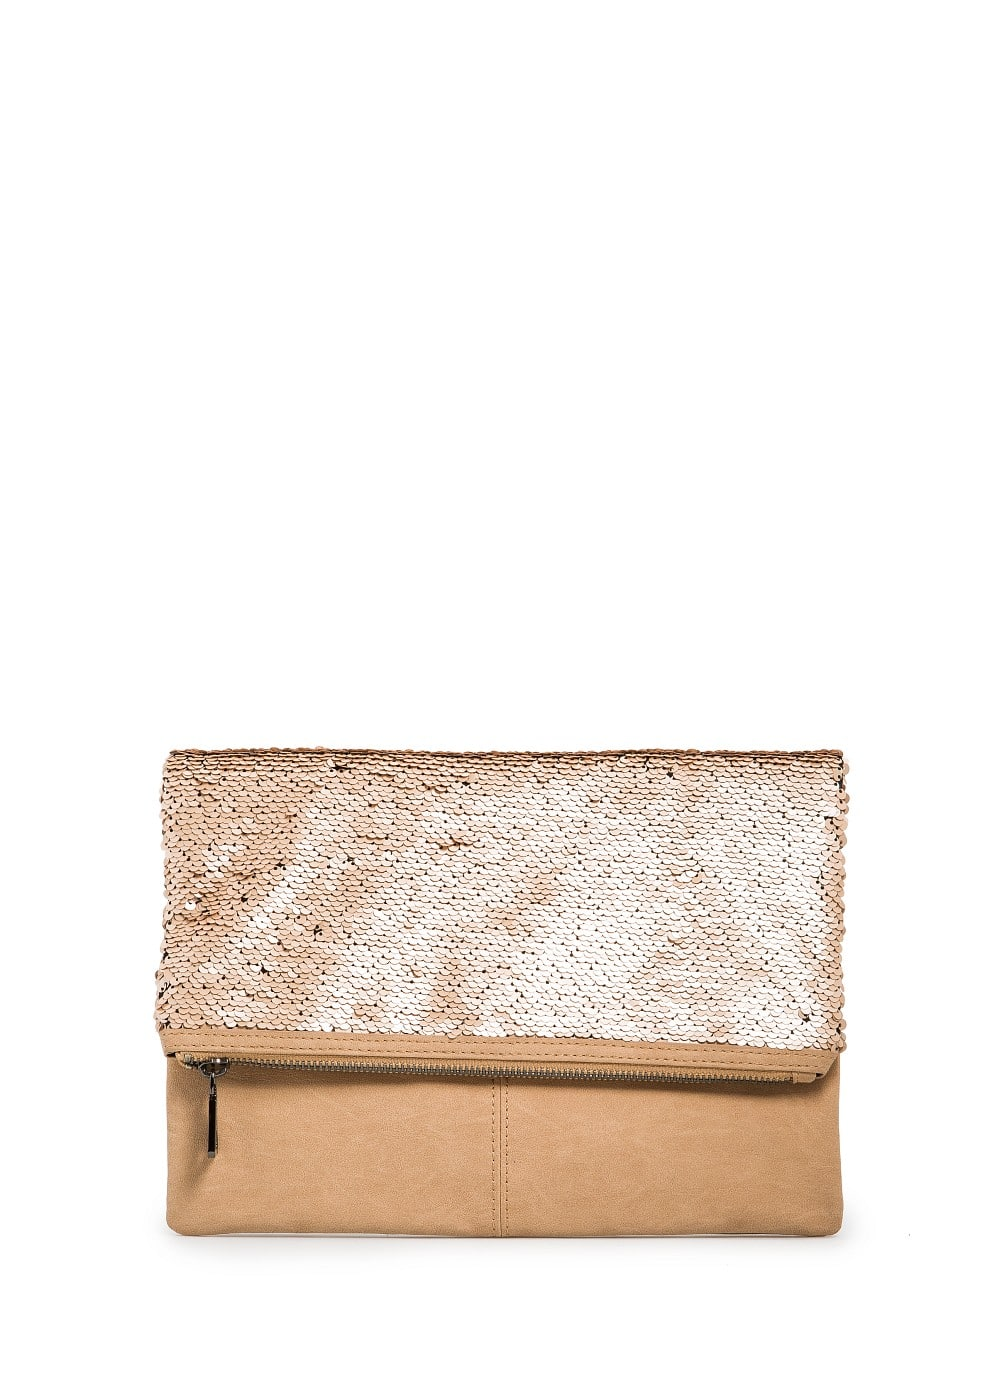 SEQUINED FOLDED CLUTCH